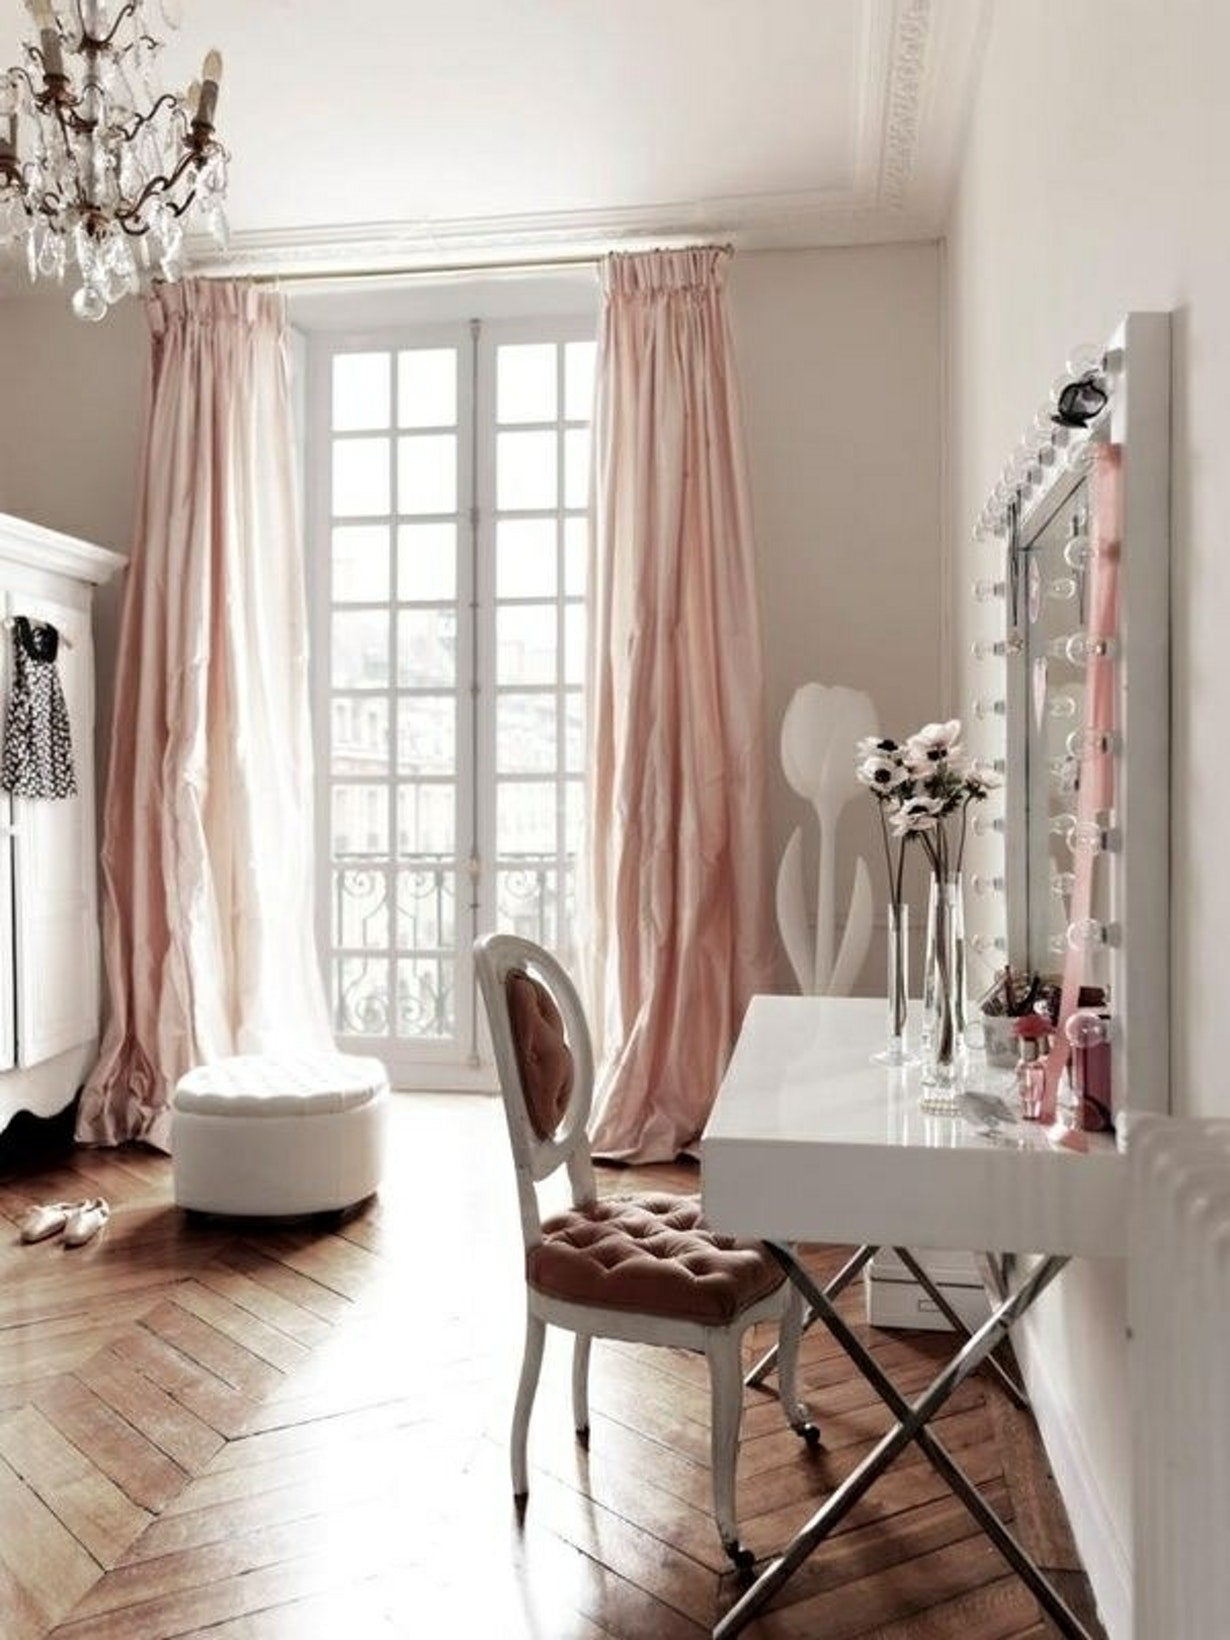 Stunning-Scandinavian-Dining-Furniture-Design-with-blush-curtains